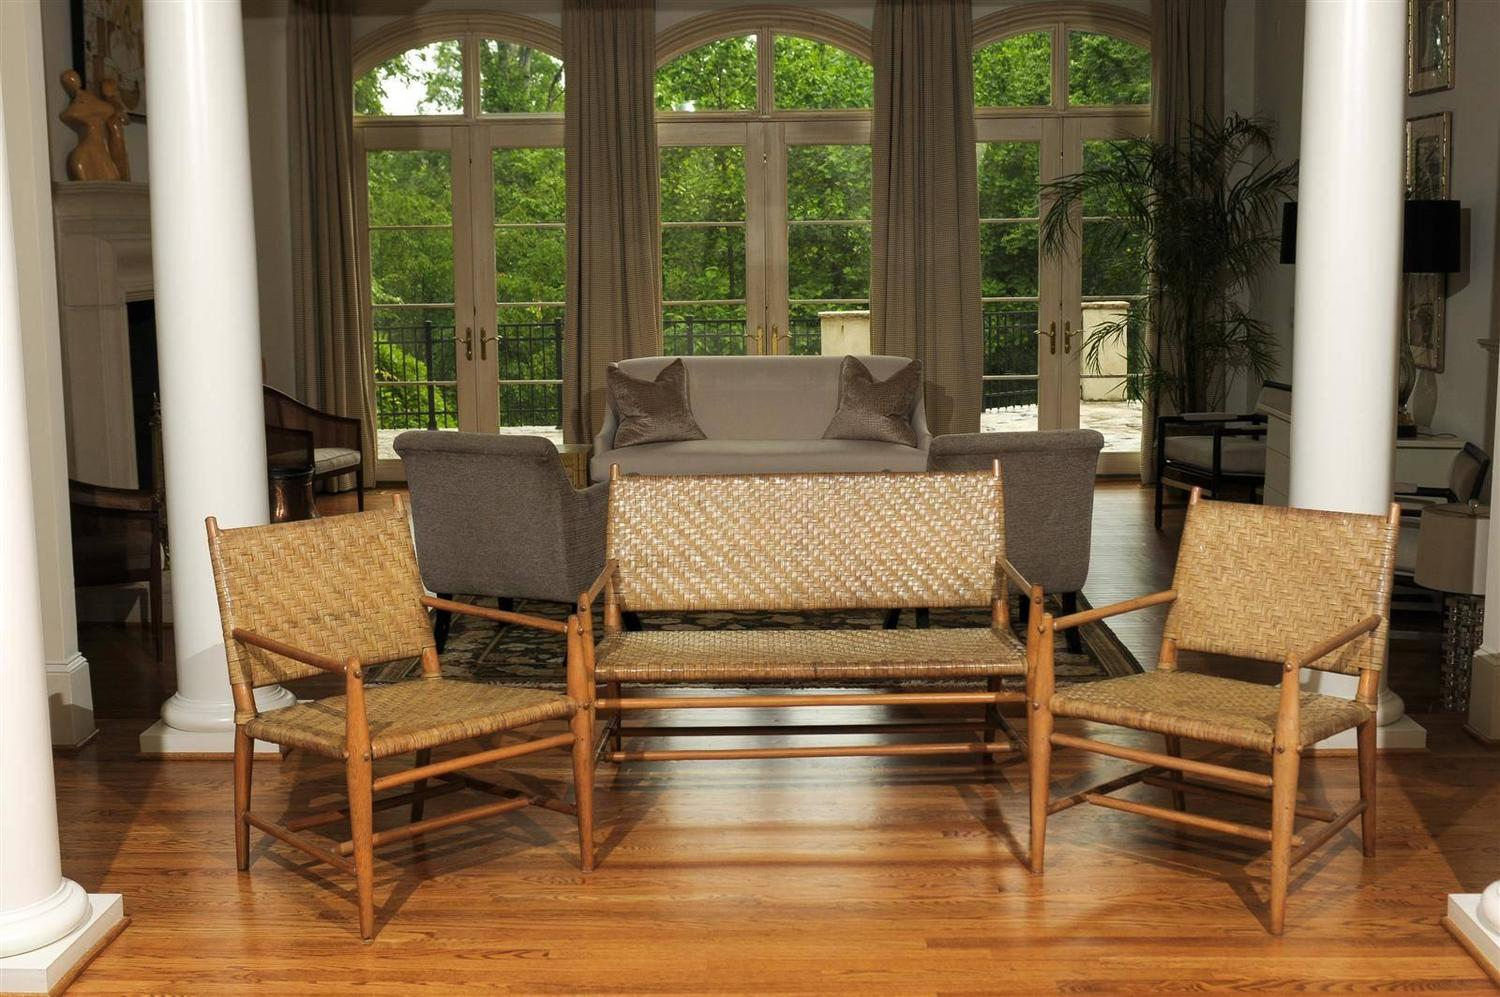 Exceptionally Rare Complete Three Piece Modern Seating Set